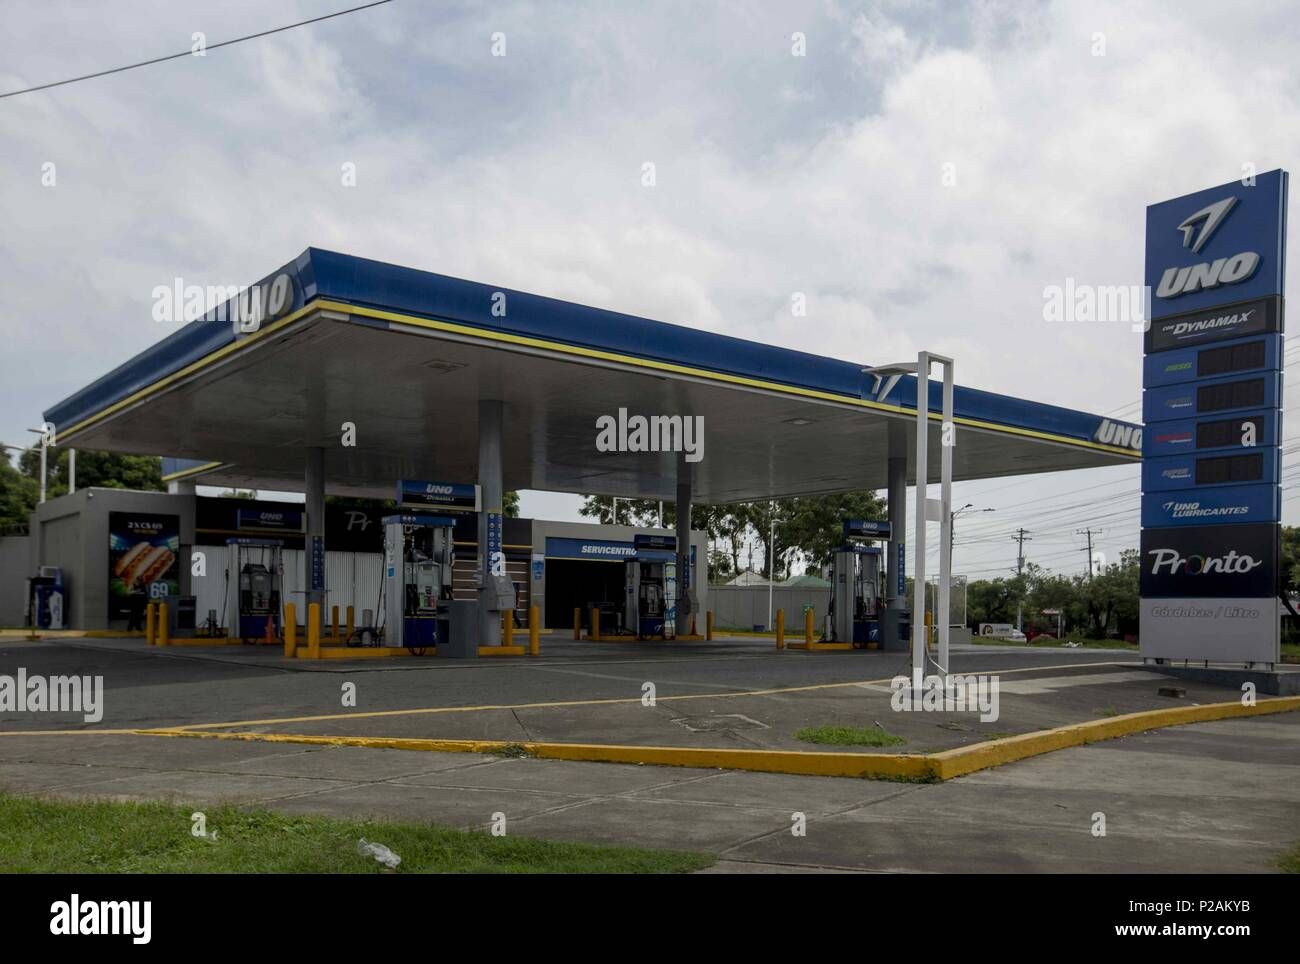 Managua, Nicaragua  14th June, 2018  View of a gas station